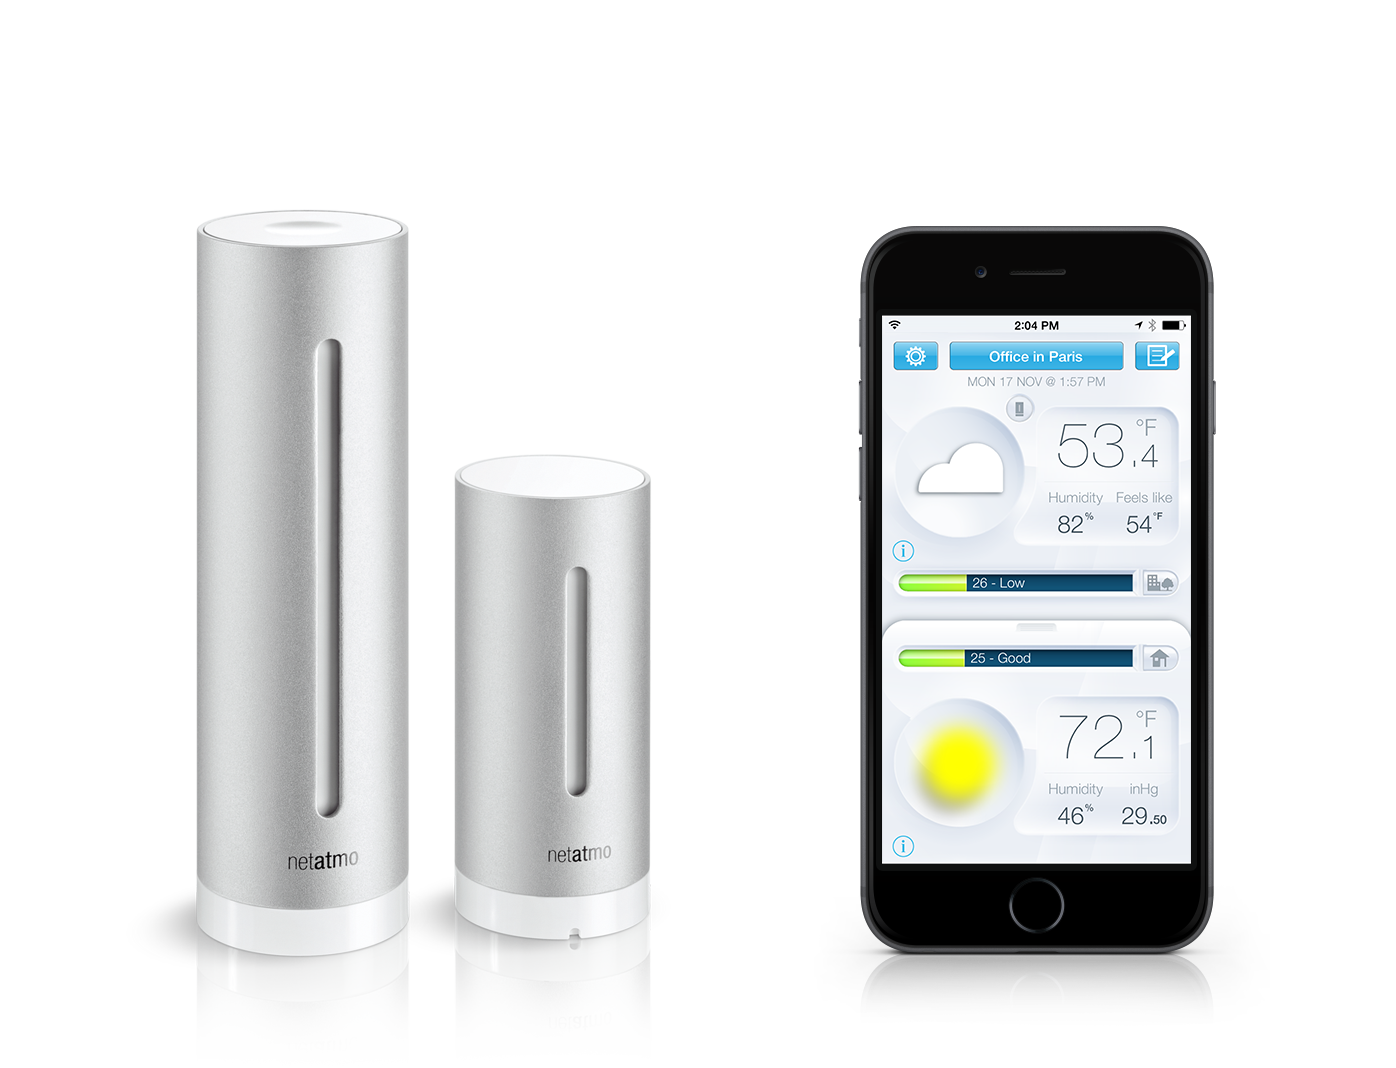 The Netatmo Weather Station monitors and logs indoor